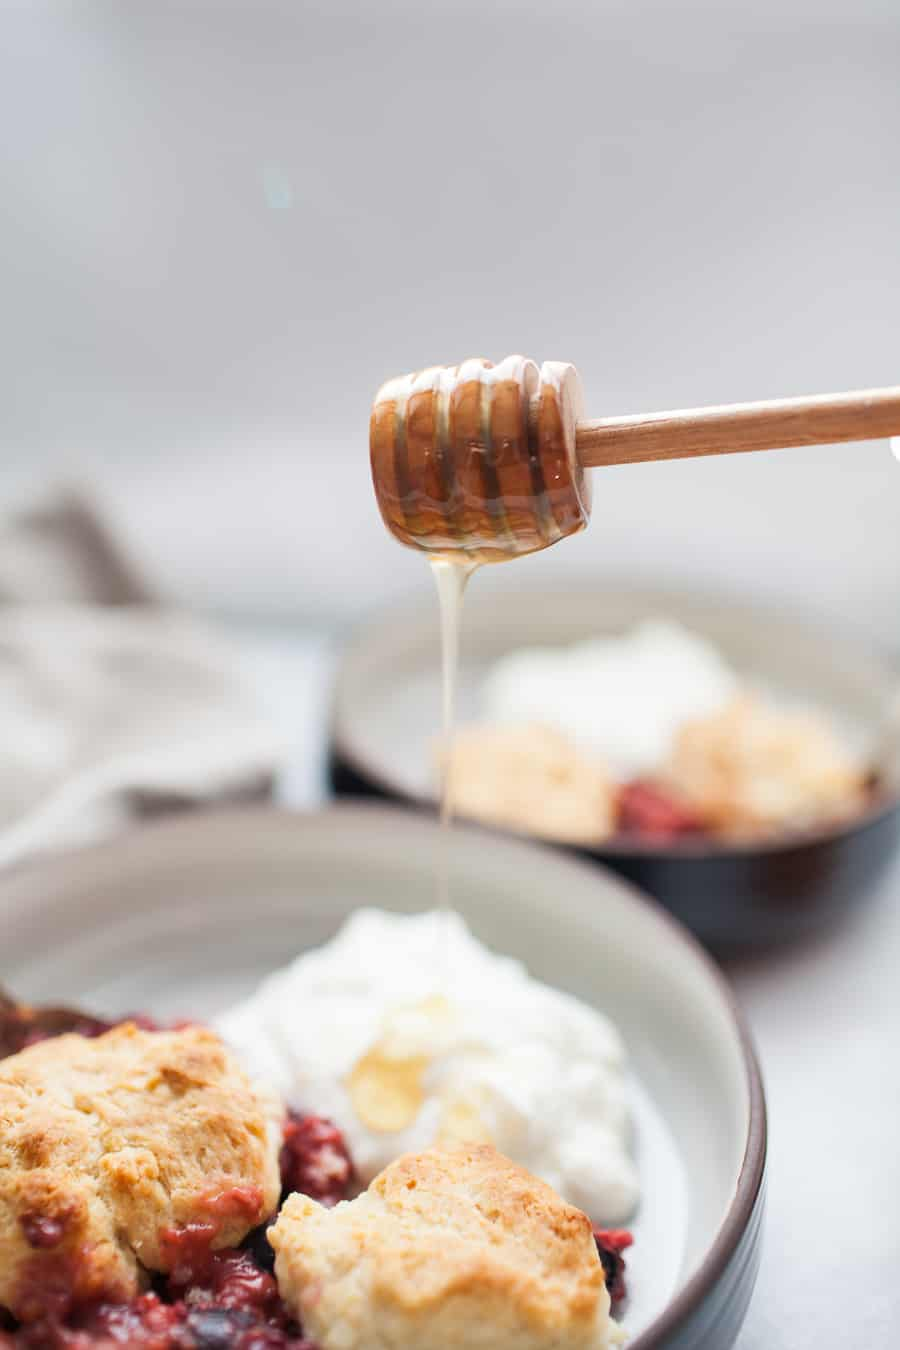 Honey pouring from a wooden honey dipper onto a shallow black bowl of triple berry cobbler with yogurt.